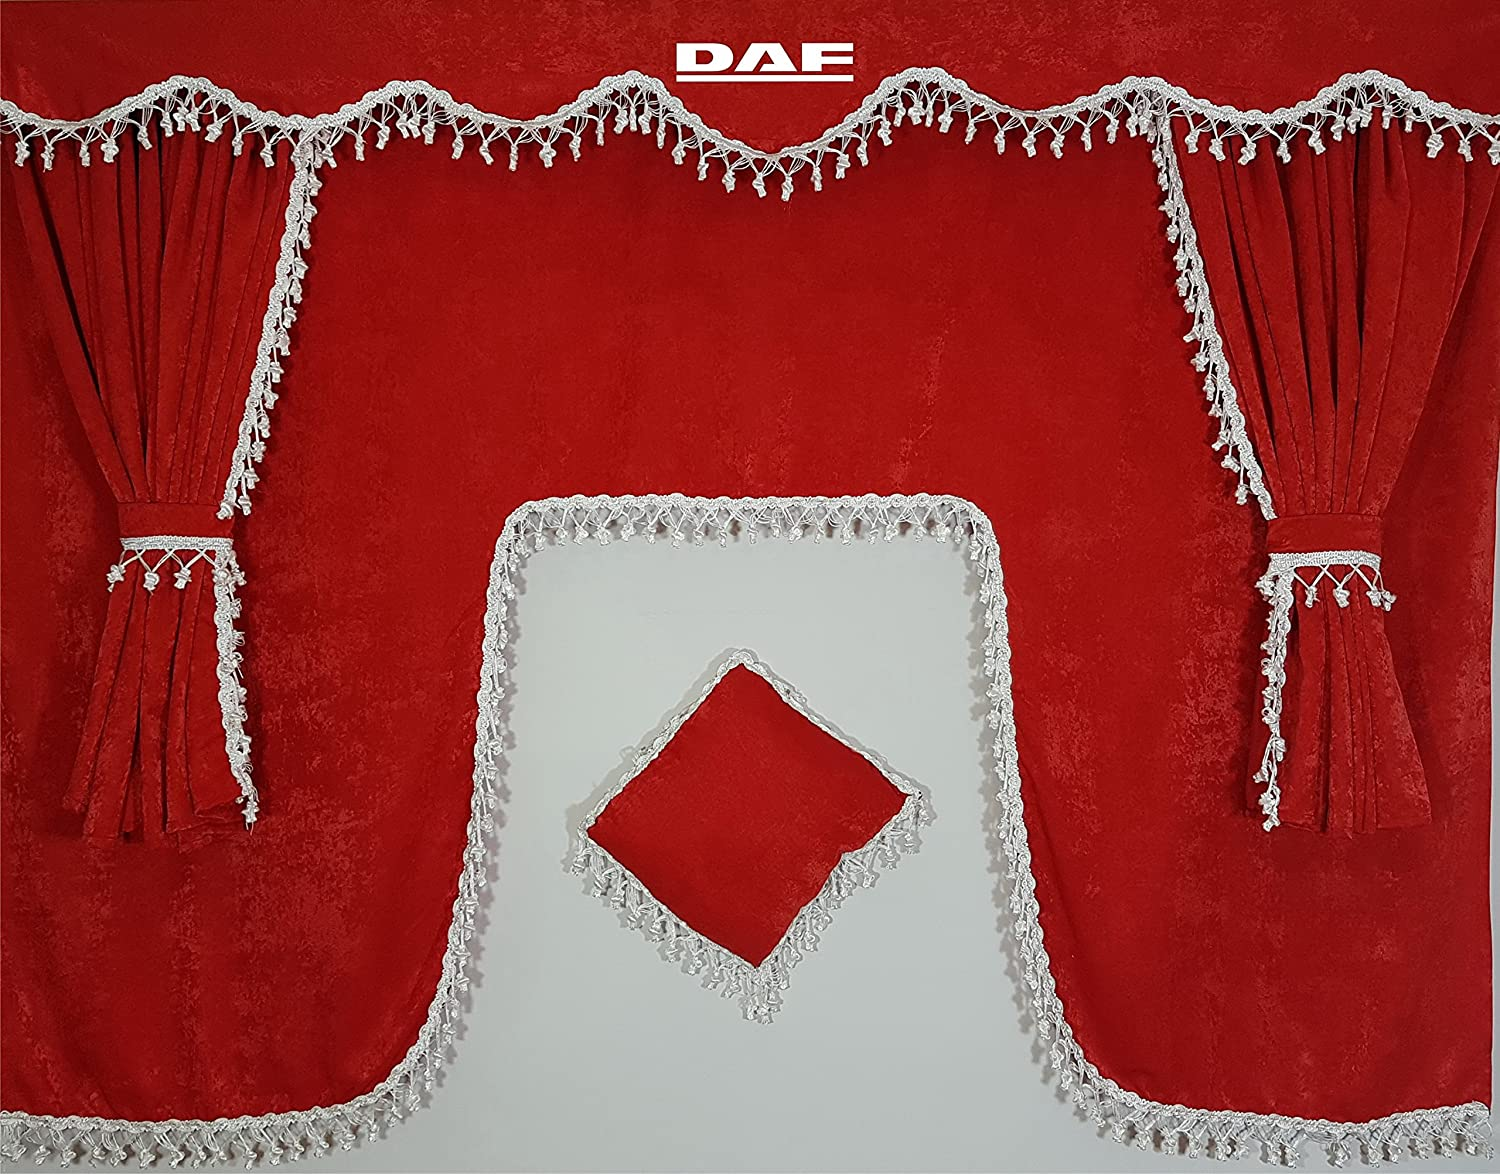 Set of 5 Pieces Red Curtains with White Tassels UNIVERSAL SIZE All Truck Models Cabin Accessories Decoration Plush Fabric Other